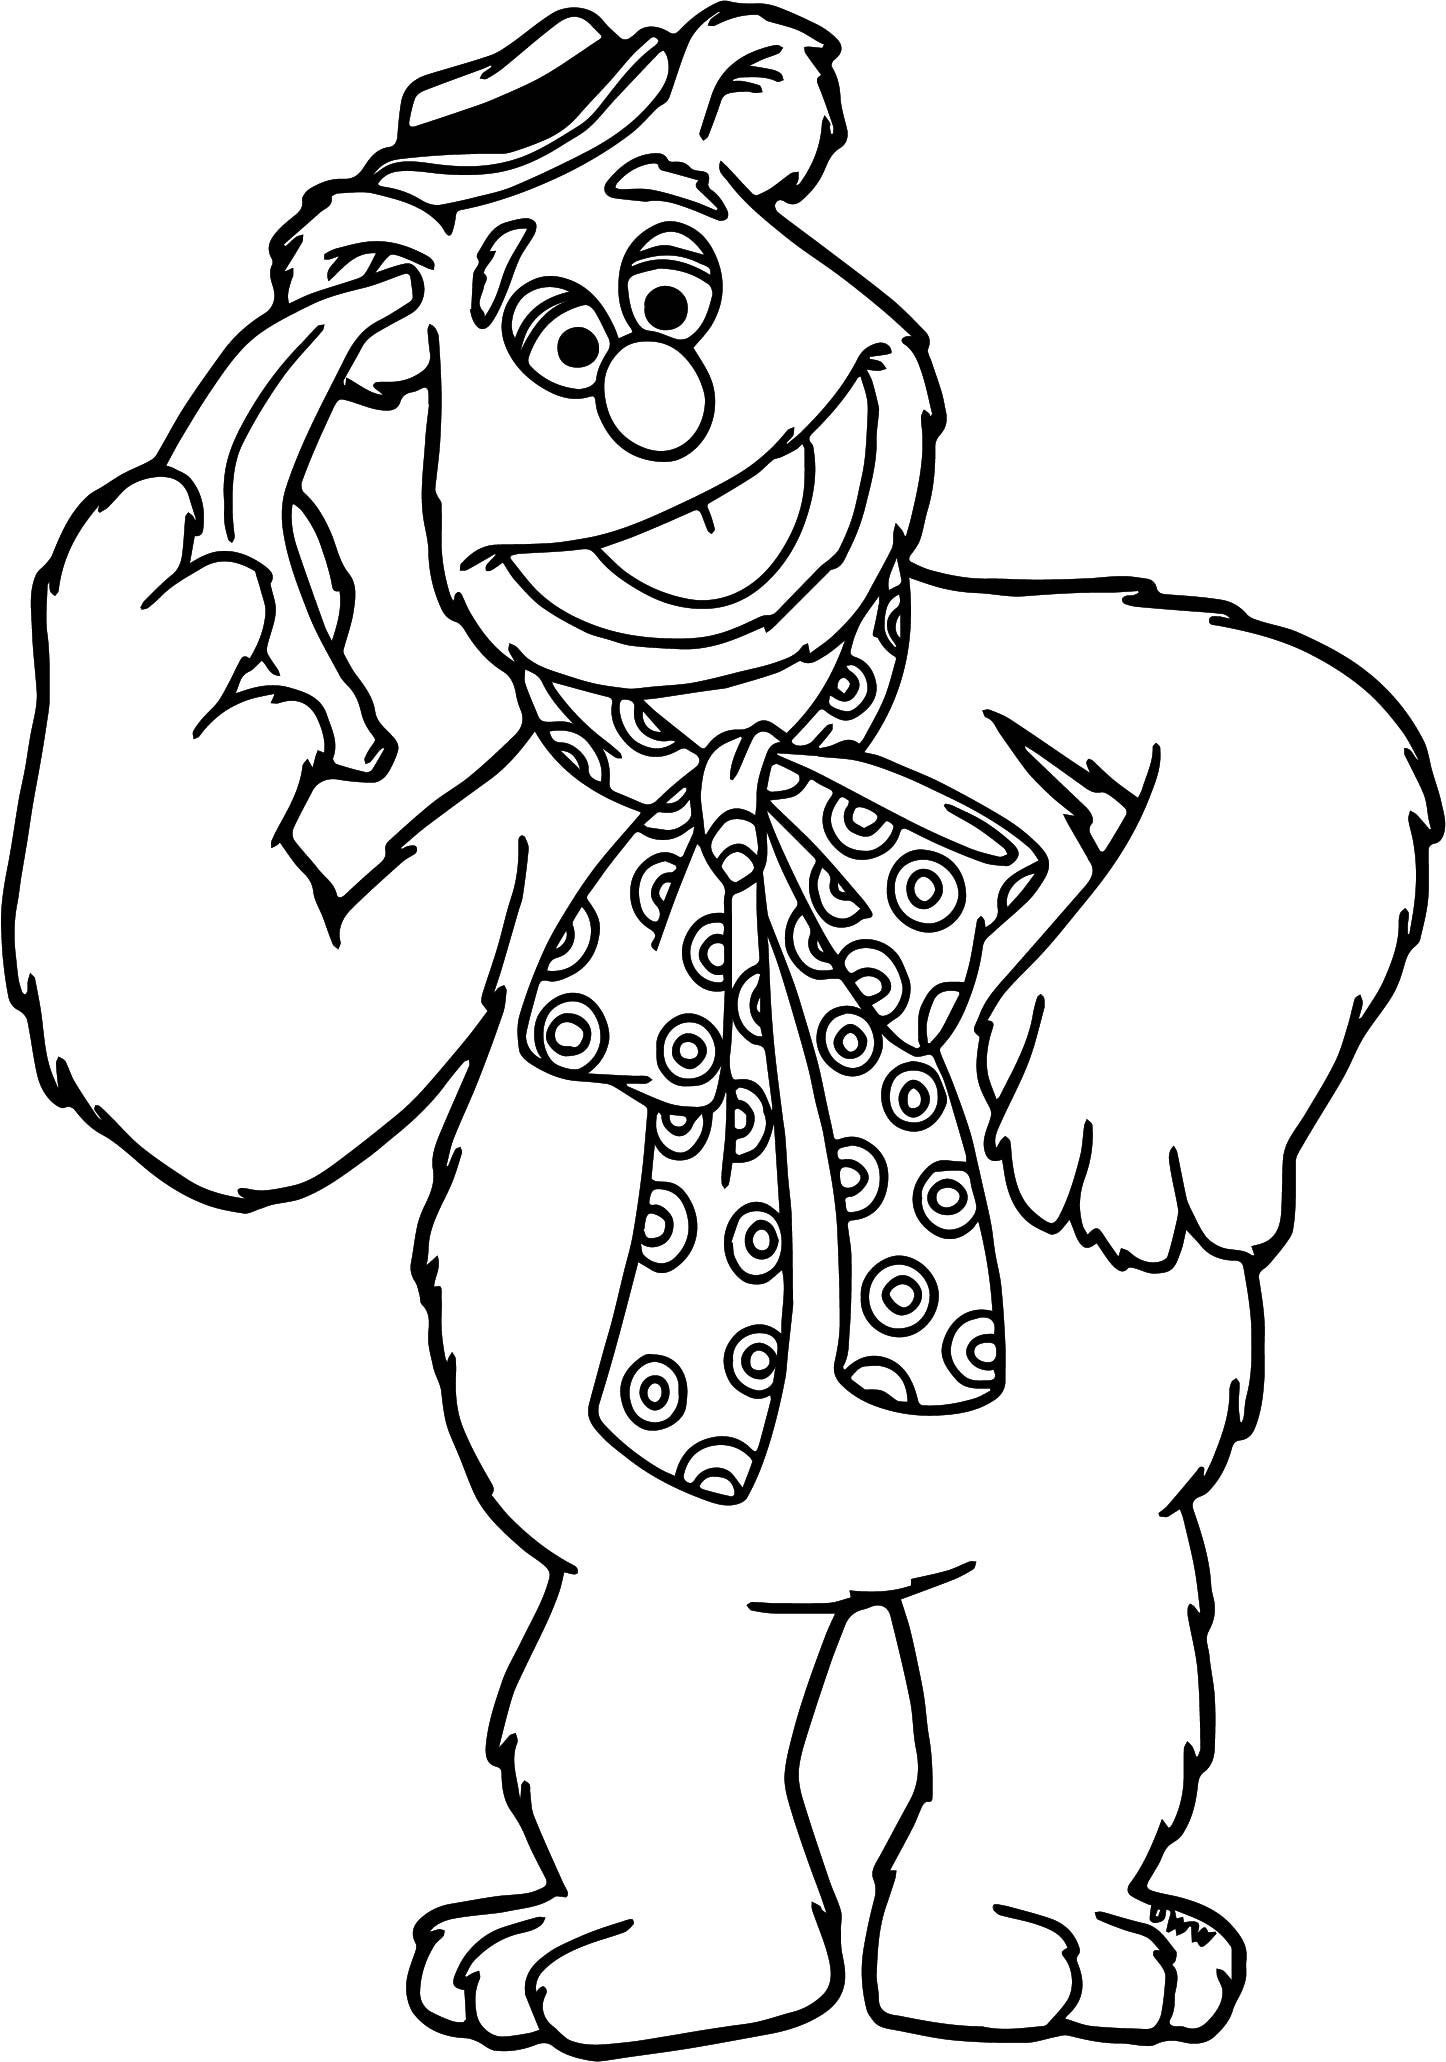 Cool The Muppets Fozzie Coloring Pages